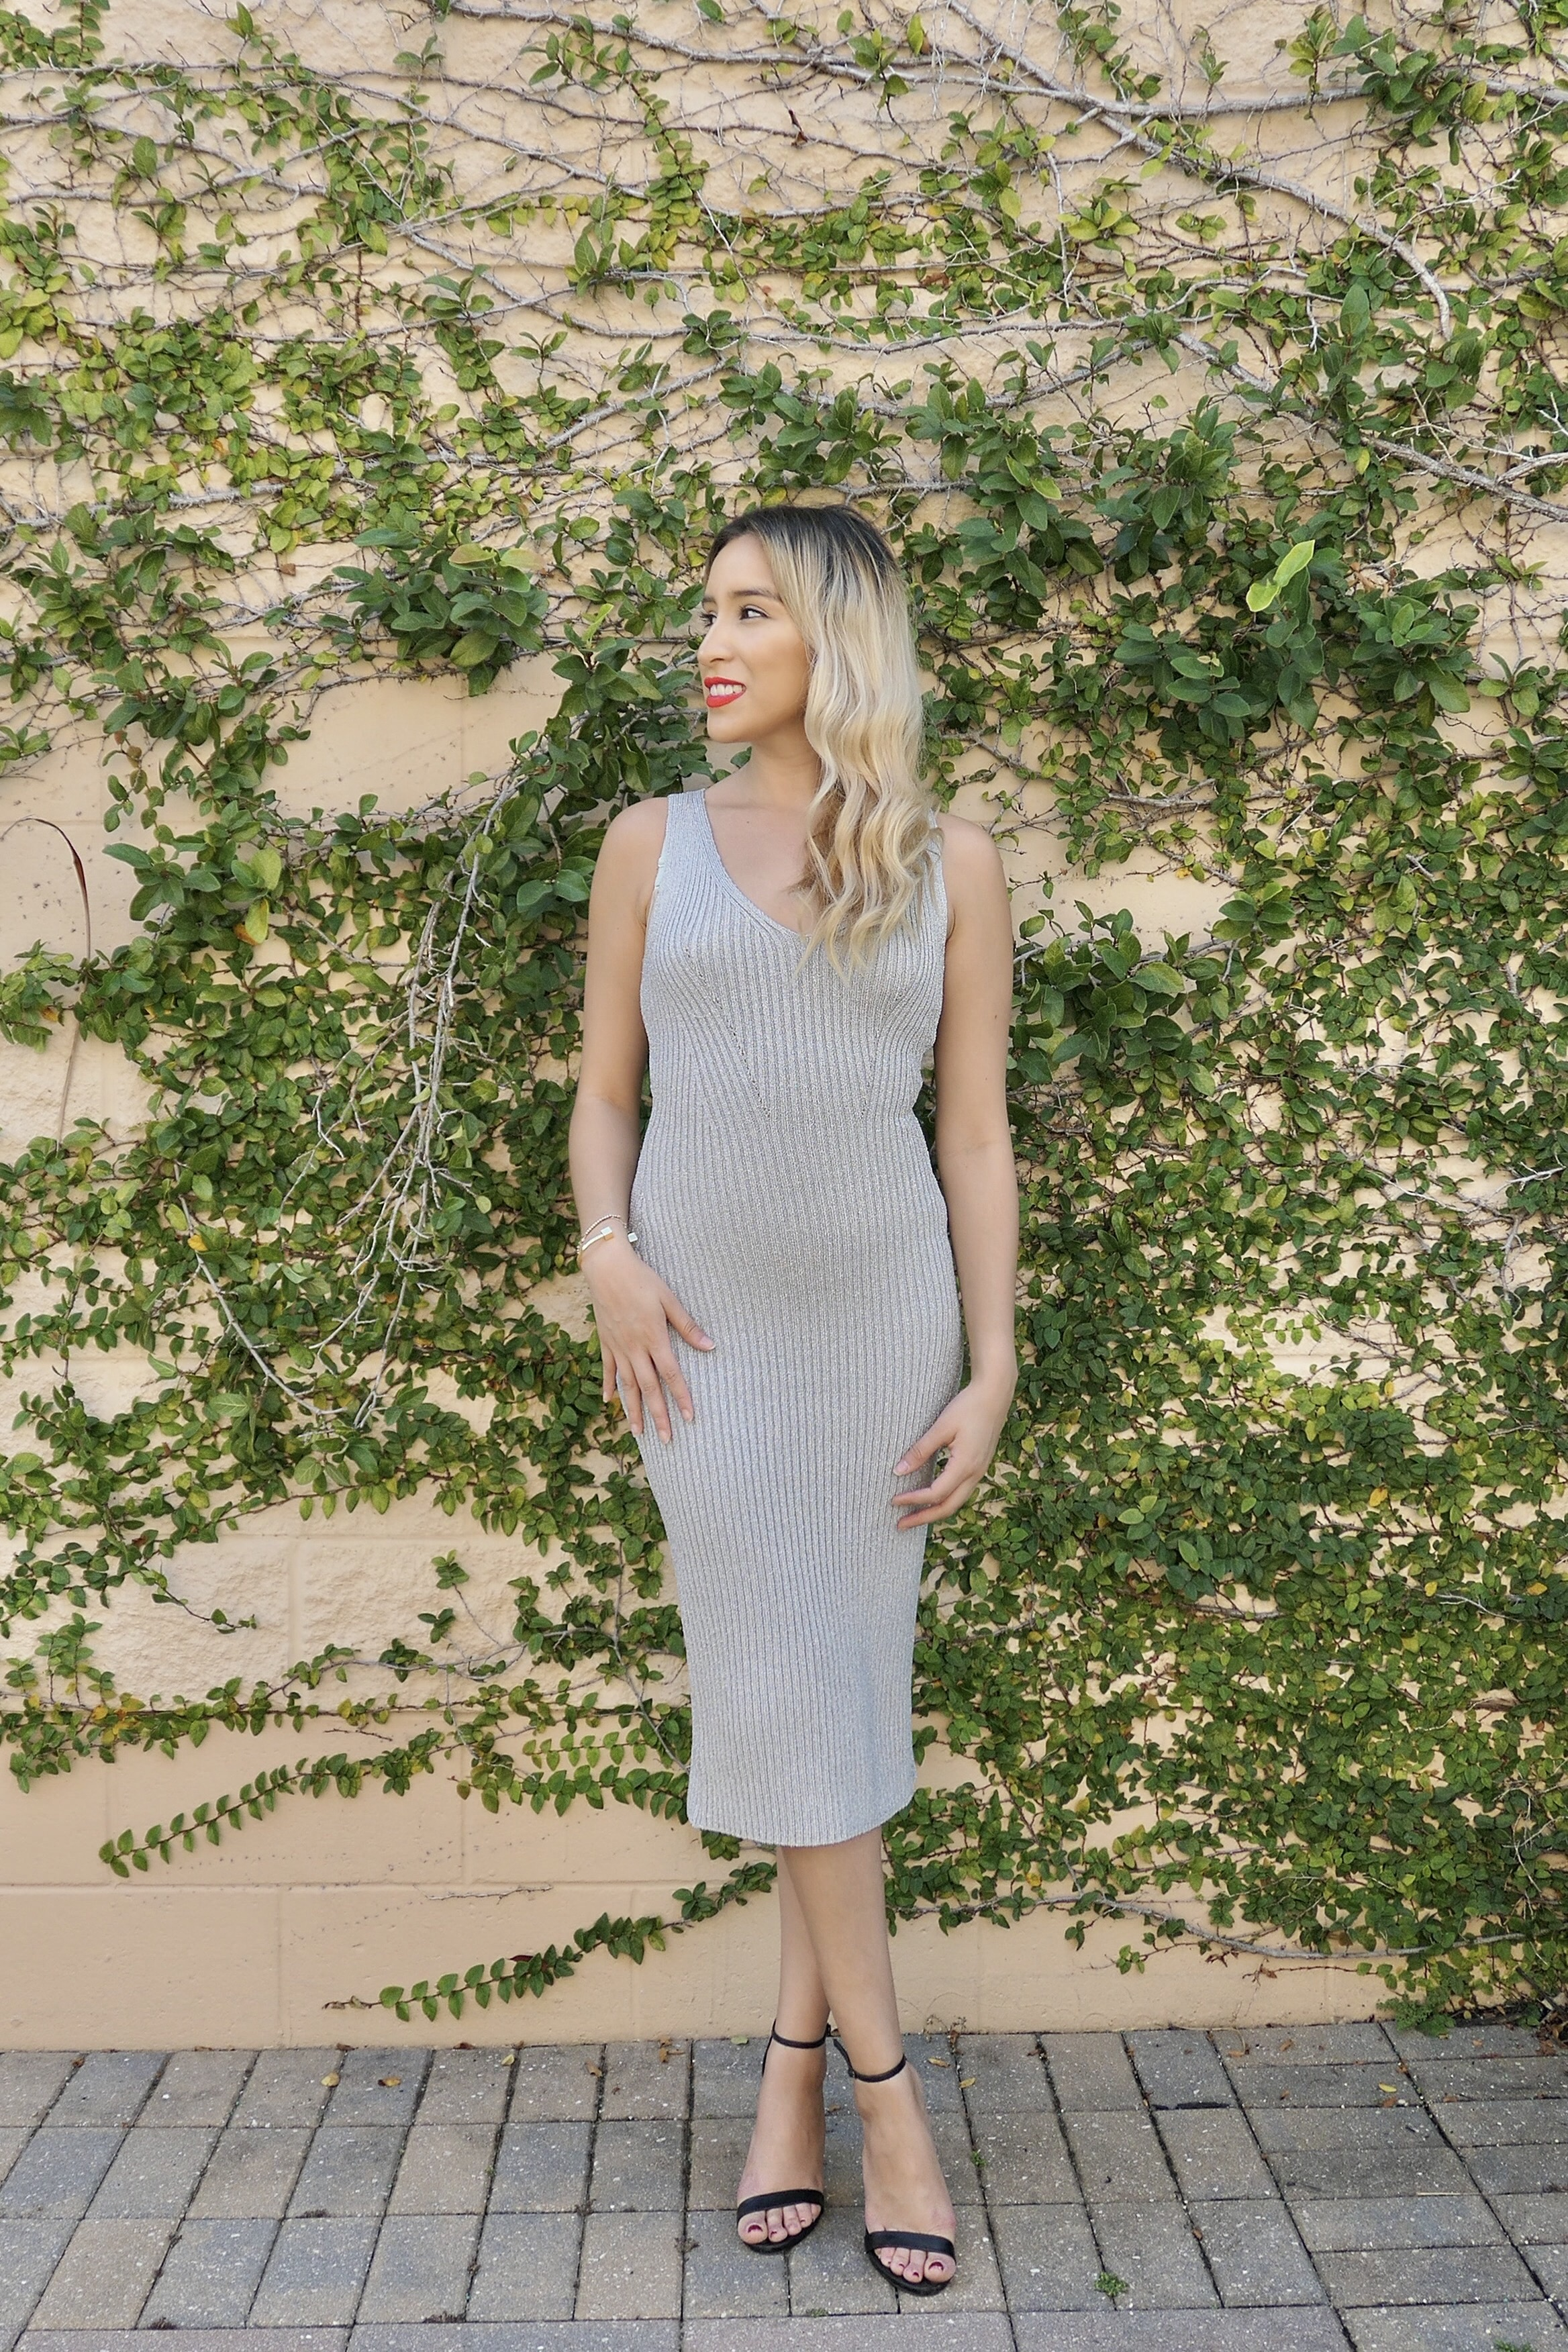 Michael Kors Silver Holiday Dress – Monica Ramos